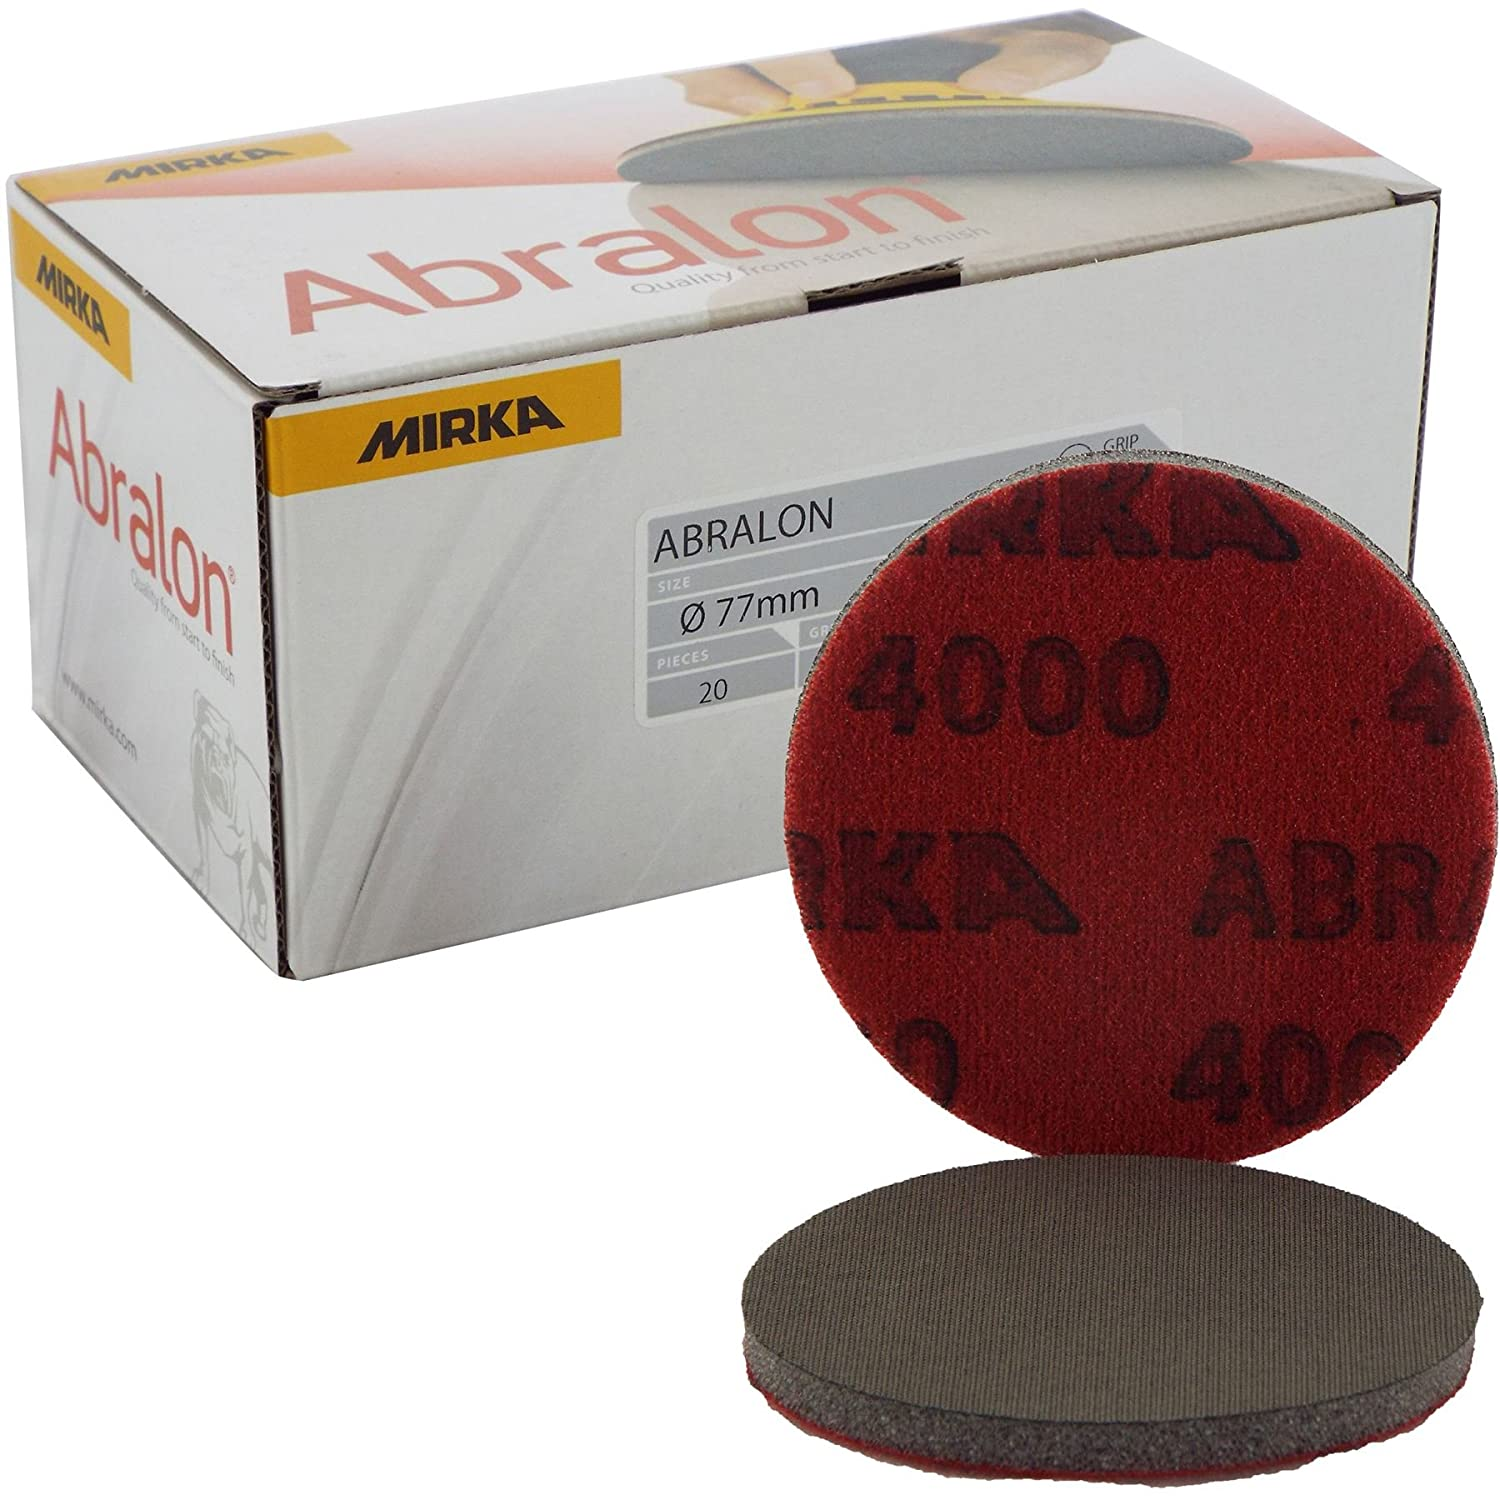 Mirka Abralon Ø 77mm 3\' 4000 Grit Velcro Sanding Disc/Pad Sand Foam Machine Pads Suitable Materials Aluminium/Hard wood/Mild steel/carbon steel/Non-ferrous metal/Paint sanding/Stainless Steel/Primer